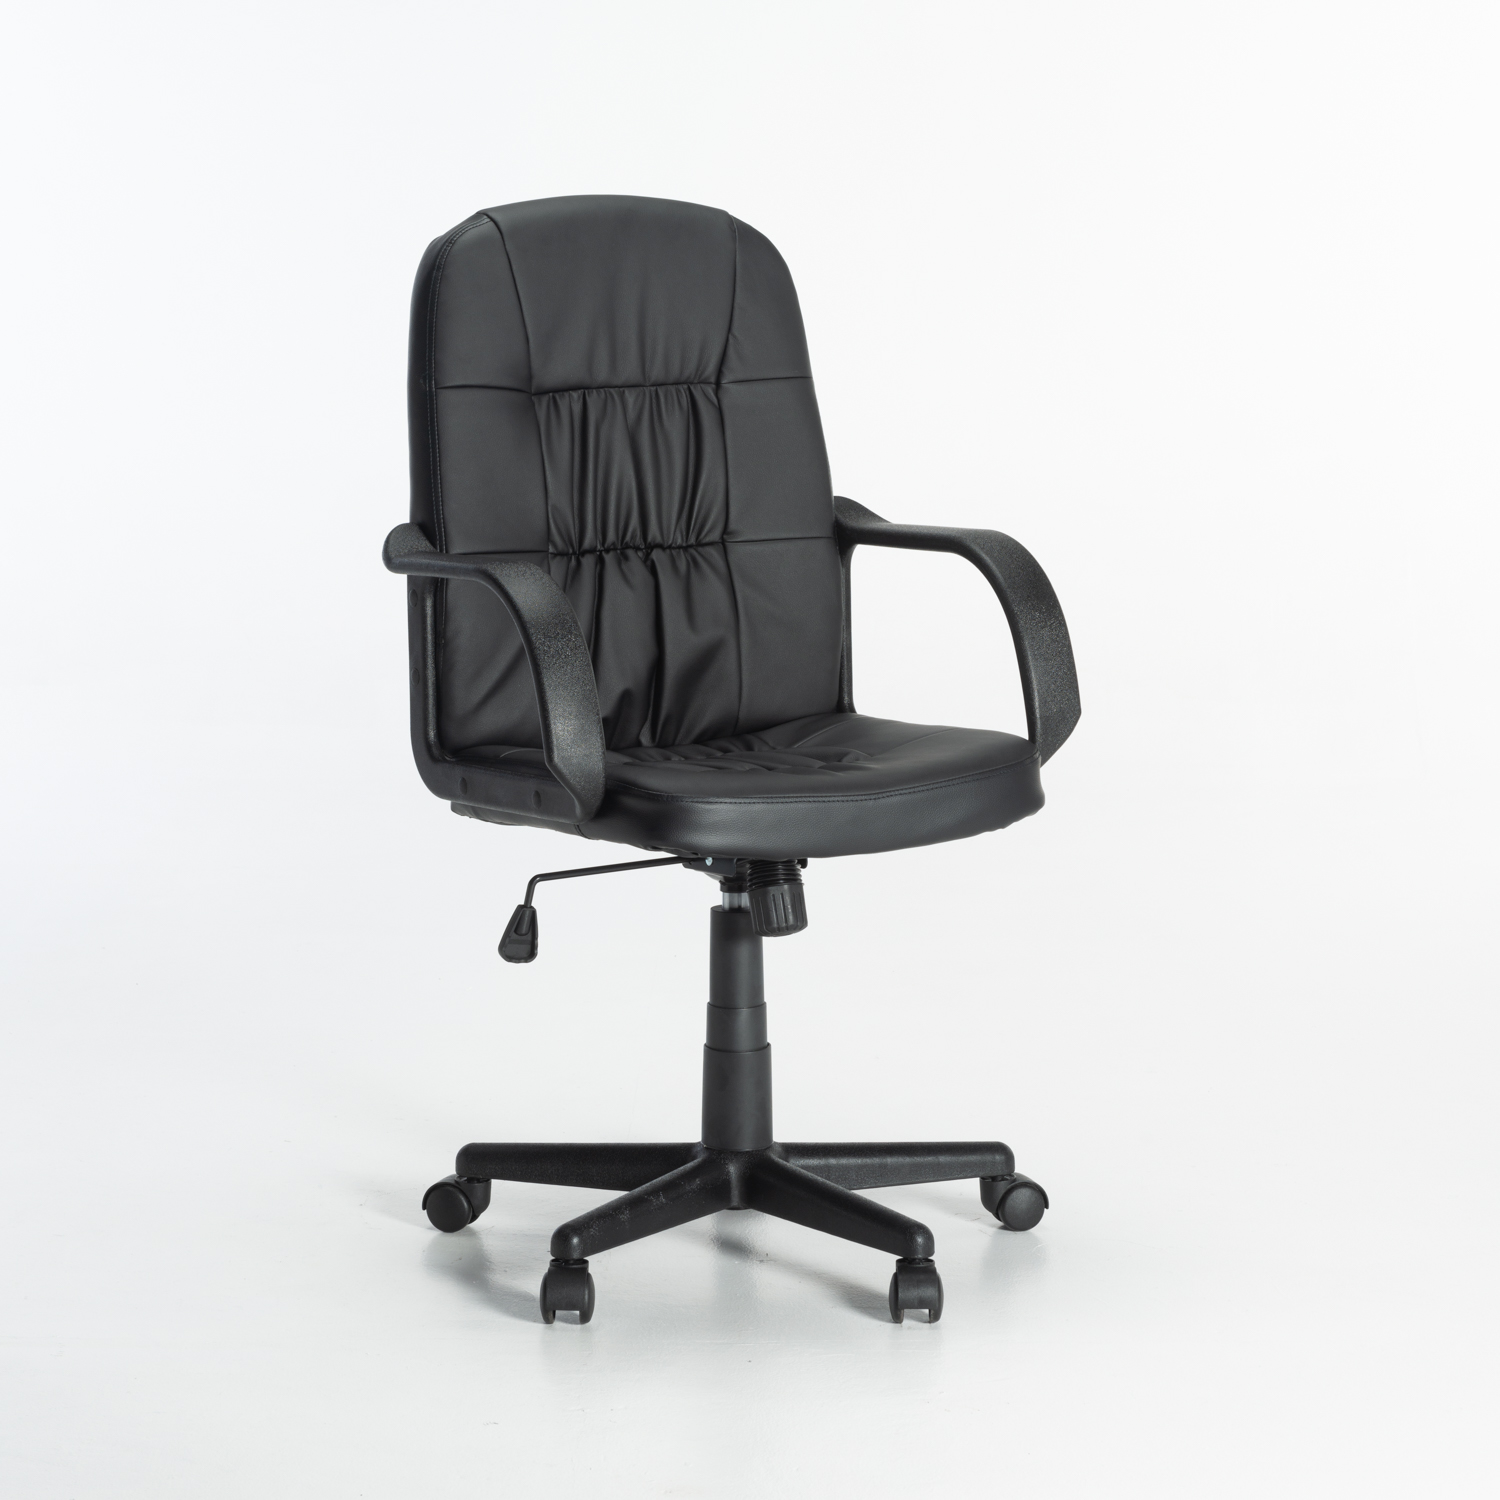 EXECUTIVE MIDBACK OFFICE CHAIR OF610